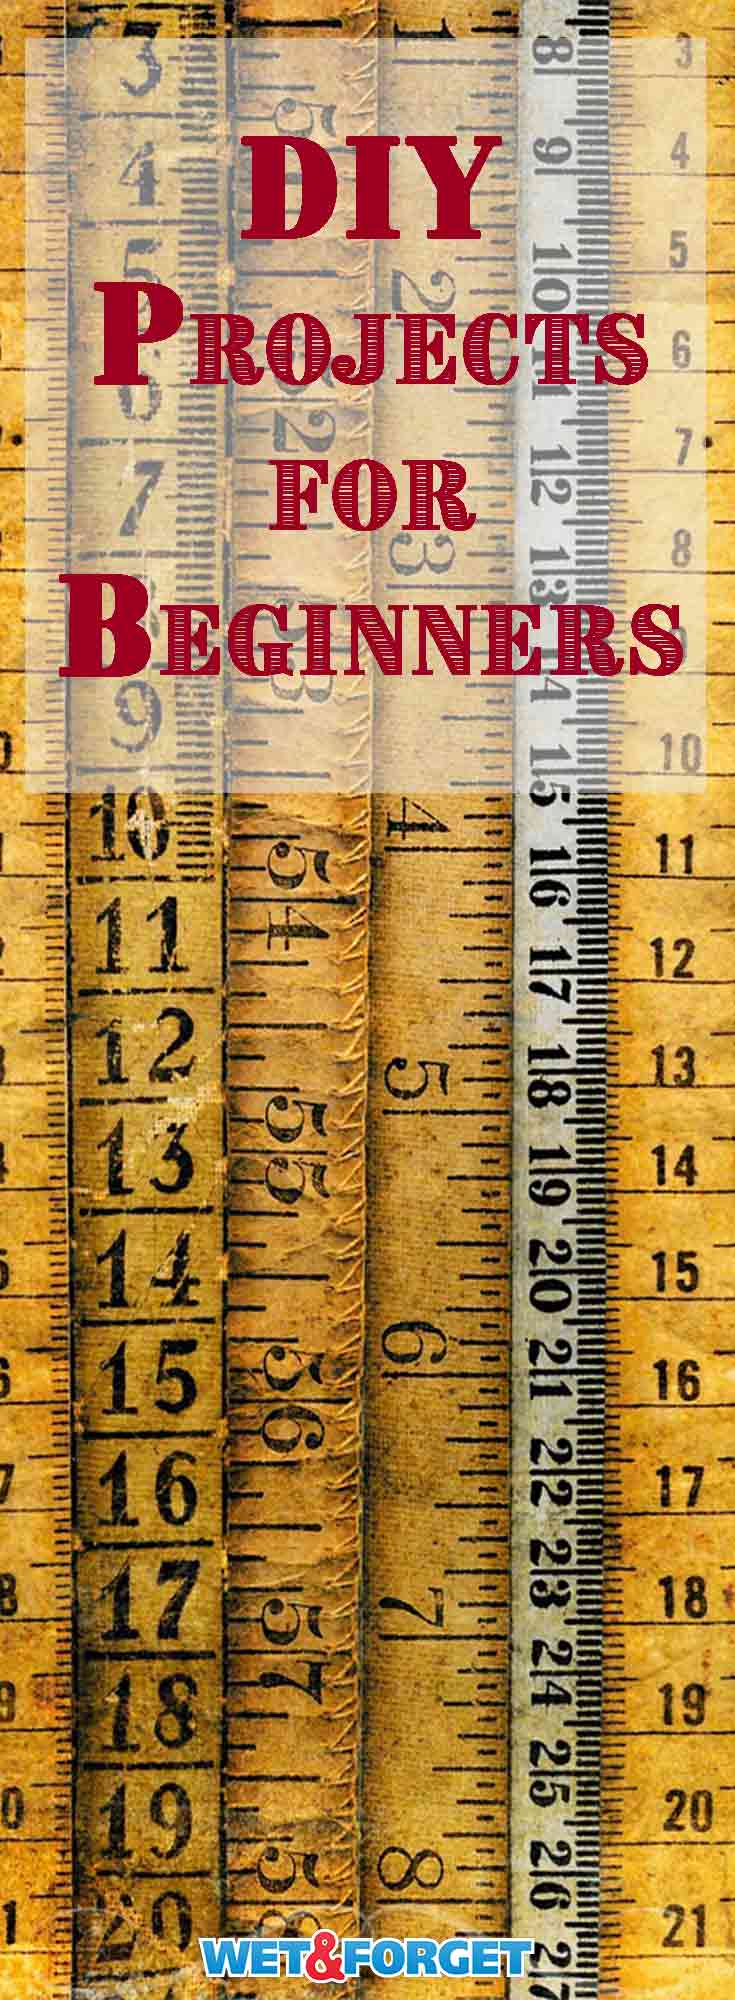 Have you always wanted to become a DIYer but didn't know where to start? Use one of our favorite easy DIY projects for beginners.